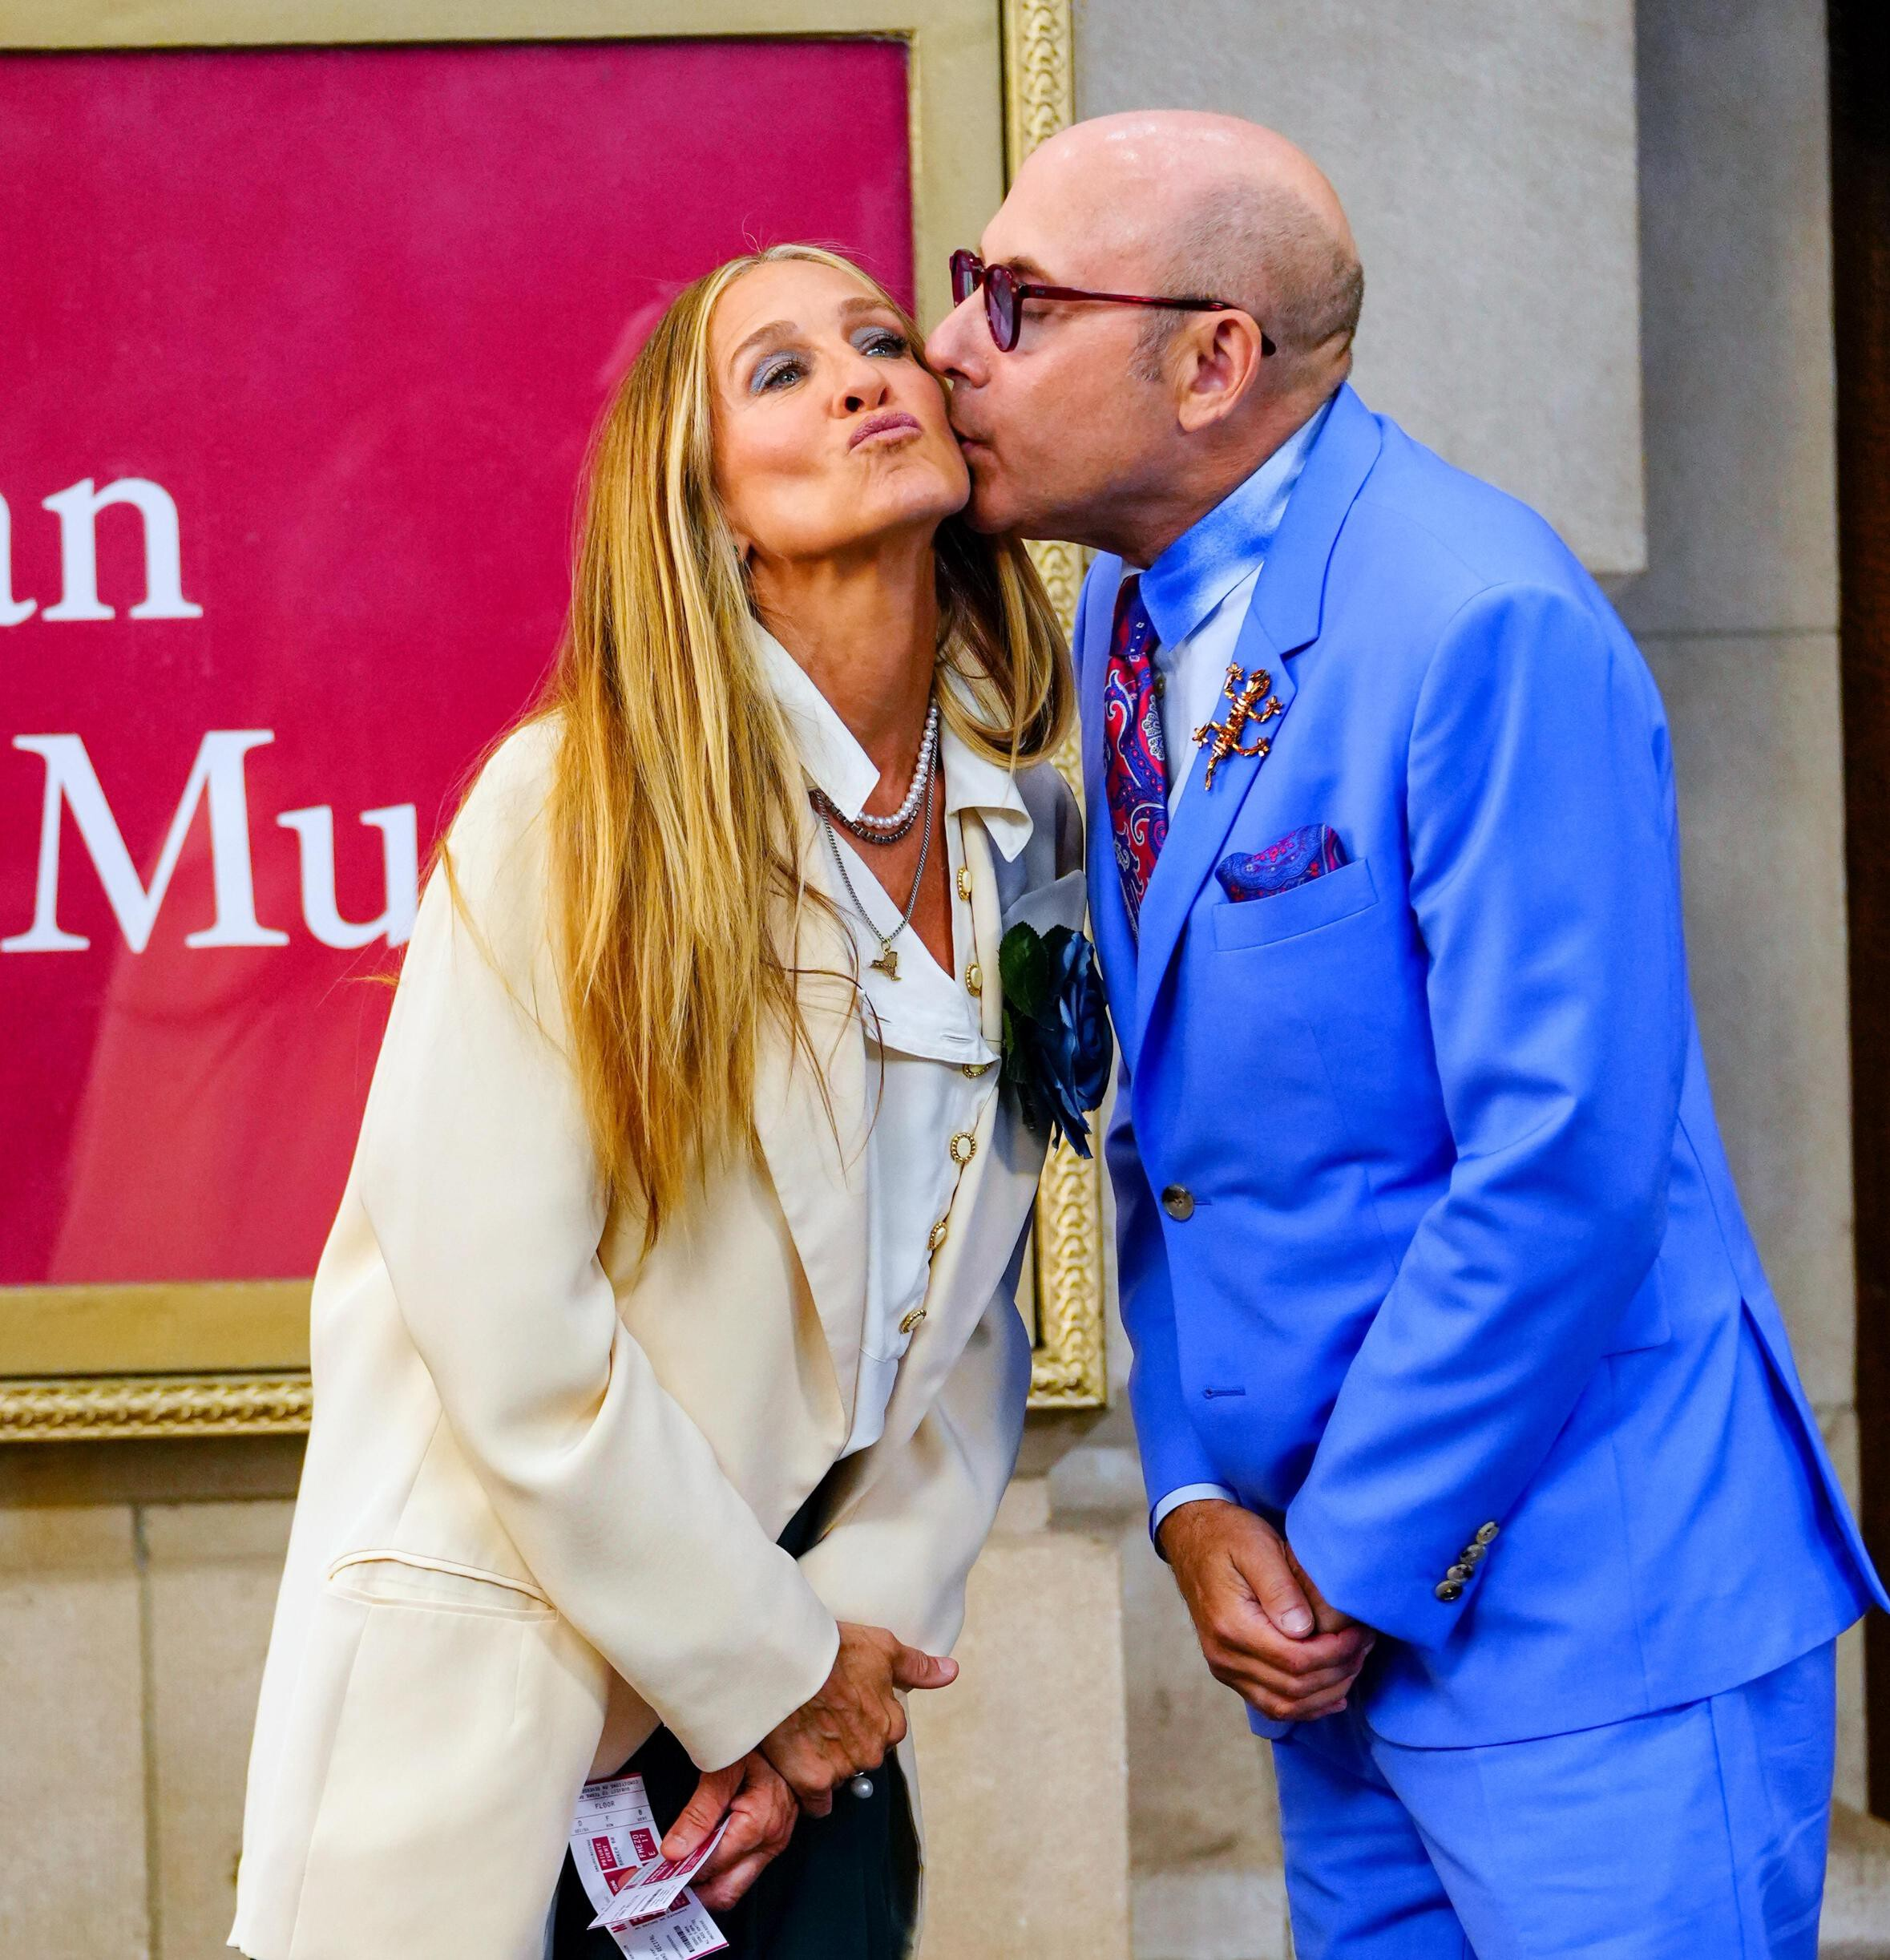 <i>Gotham/GC Images/Getty Images</i><br/>Sarah Jessica Parker paid tribute to her late